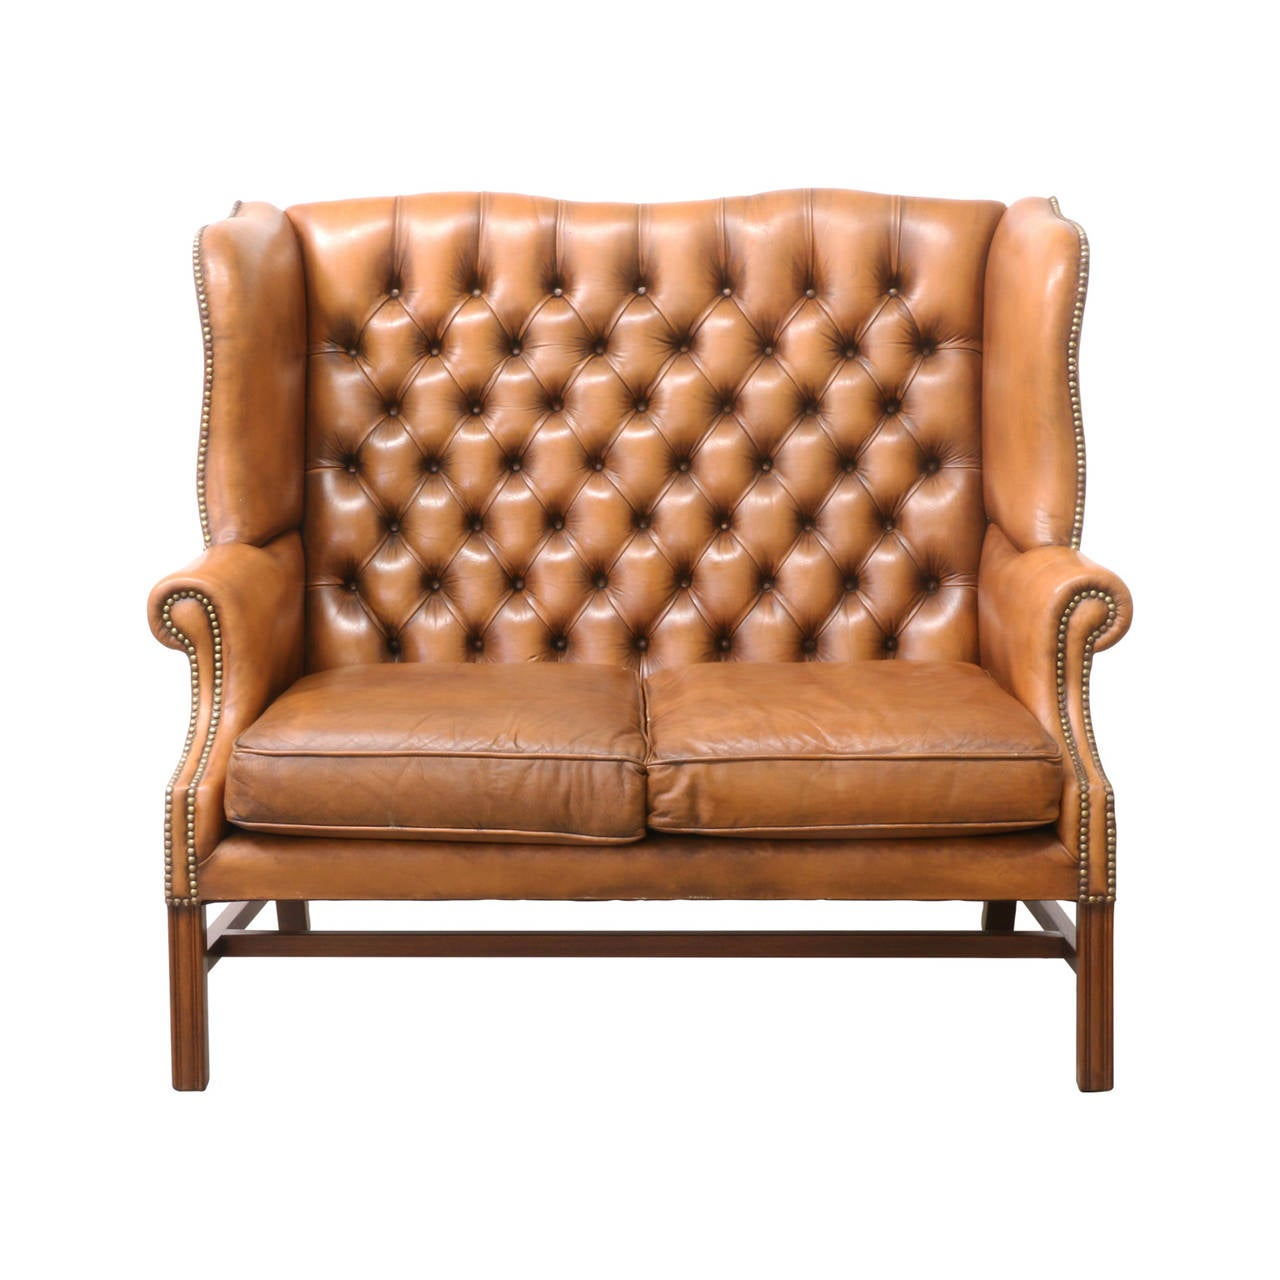 Original Leather Button Tufted Chesterfields Loveseat At 1stdibs